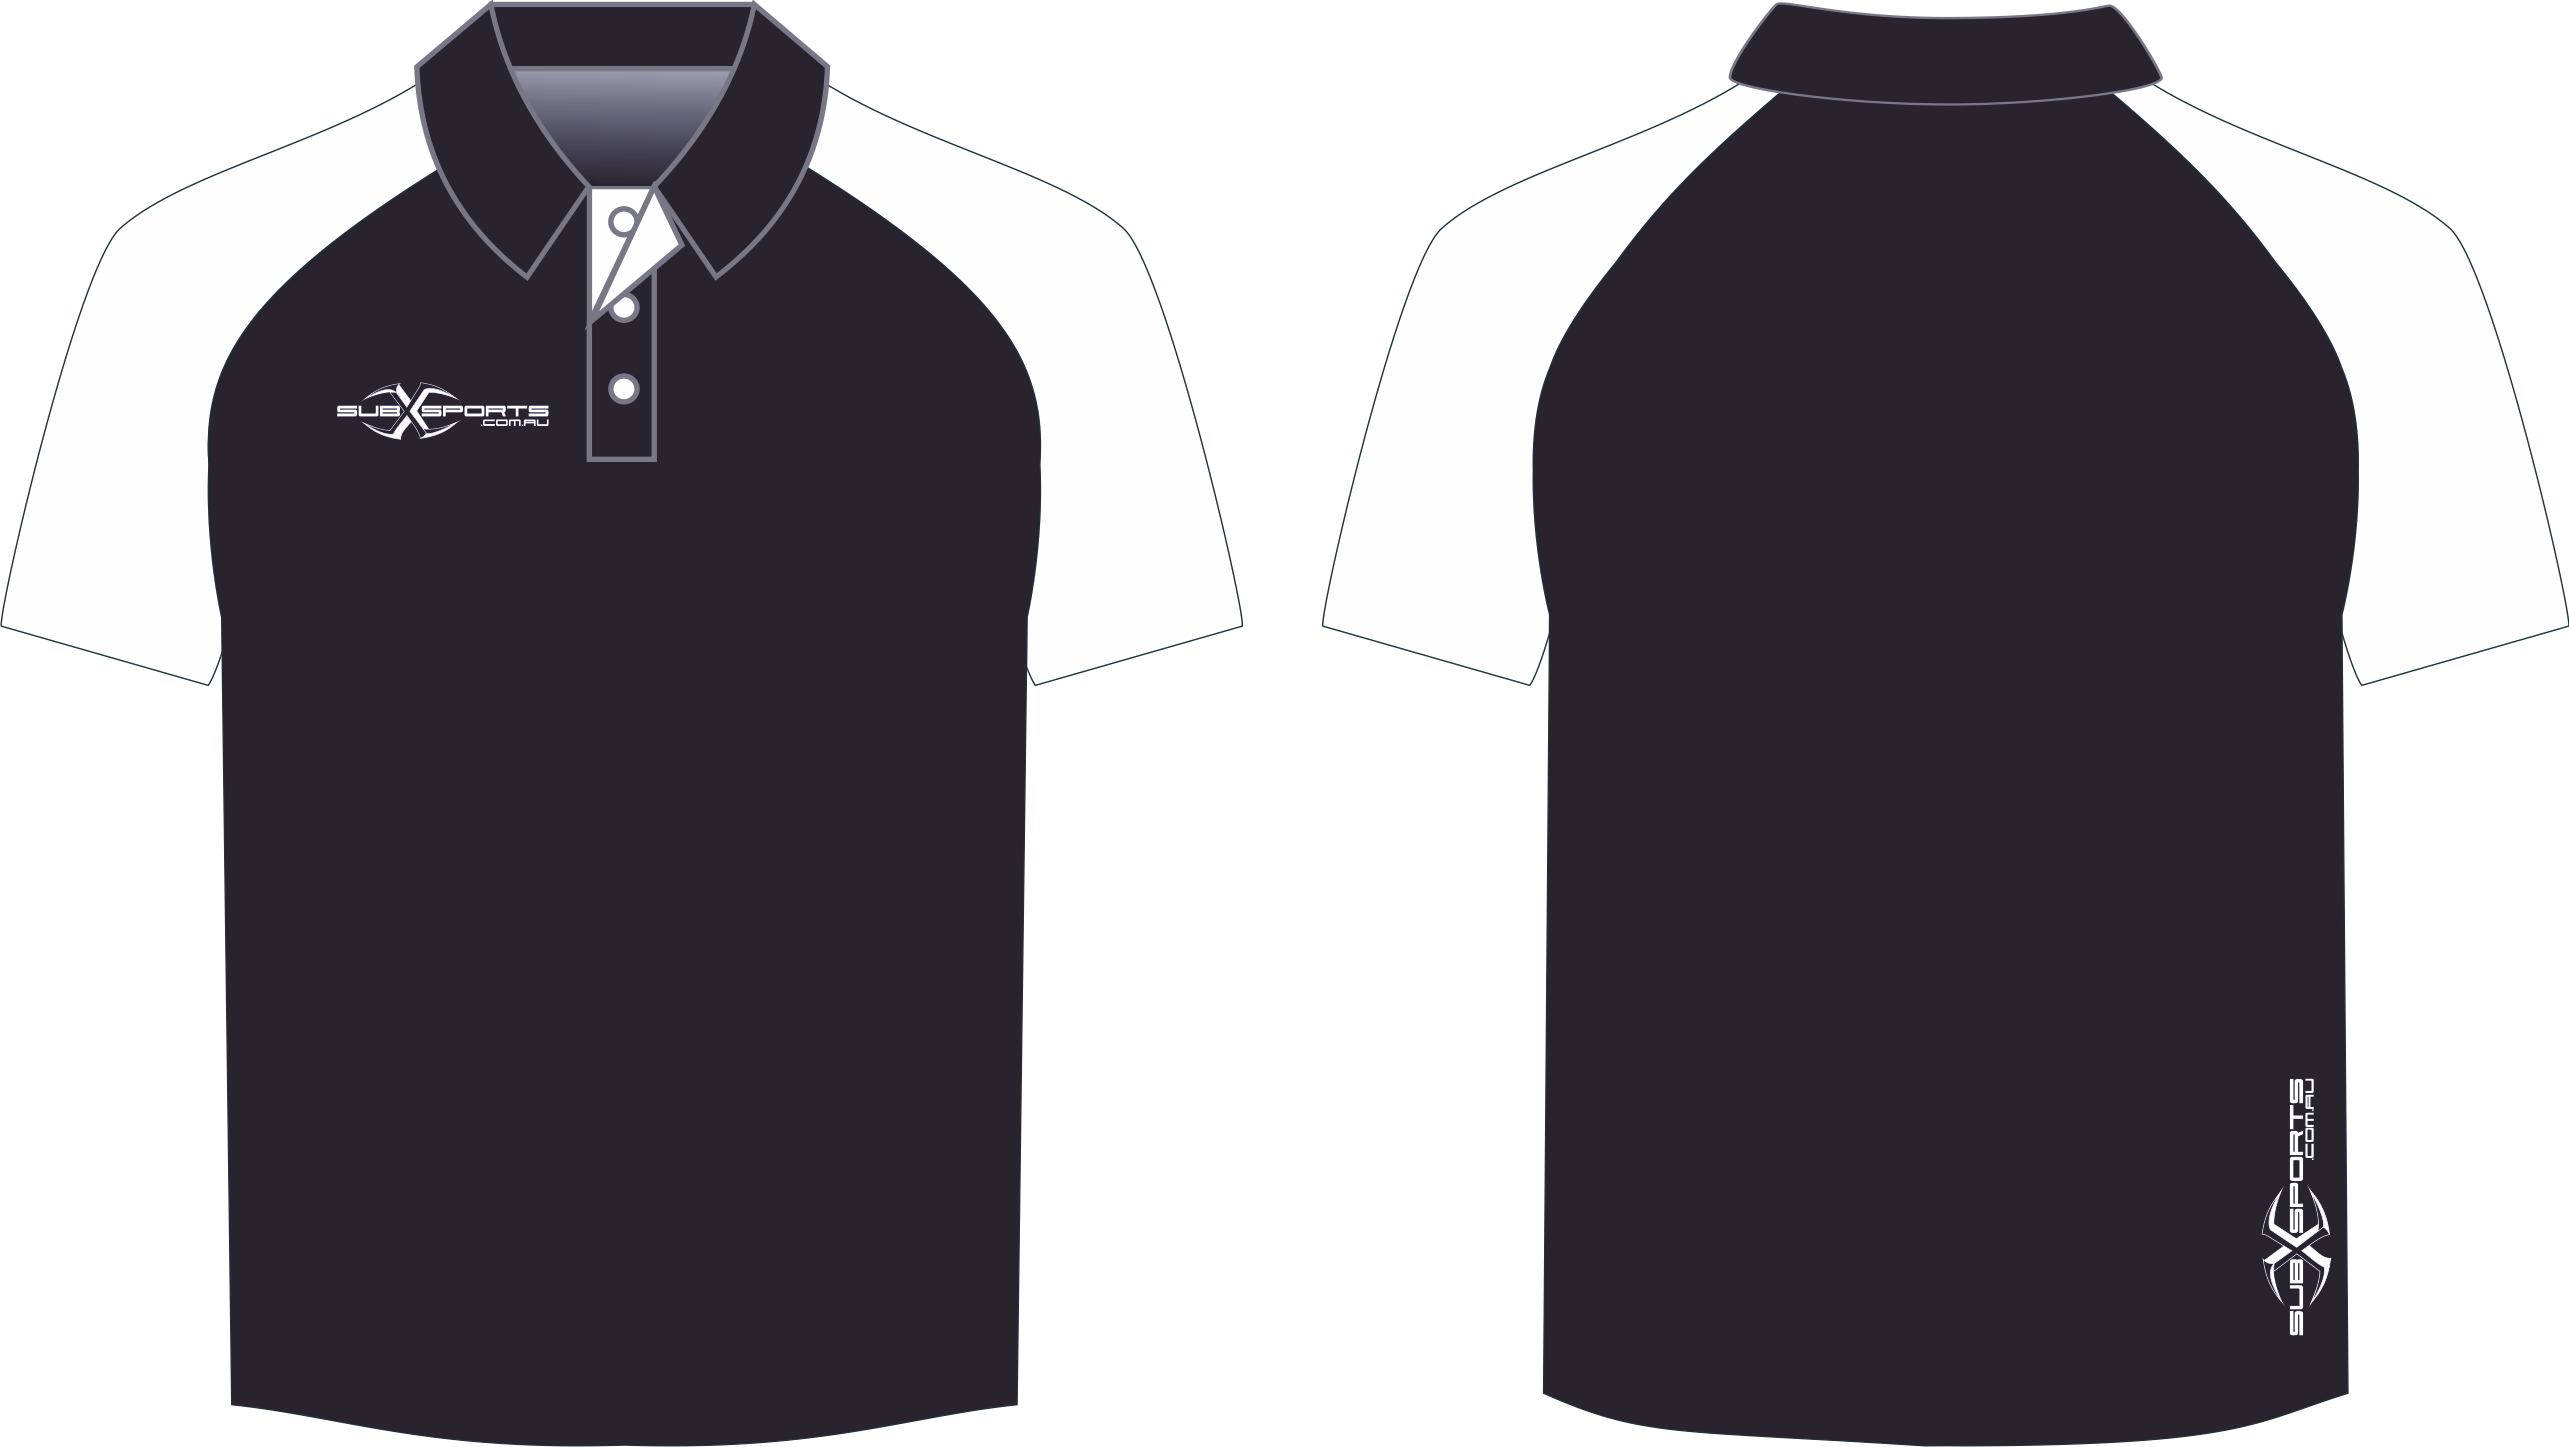 S206XP Sub Polo Black White.png